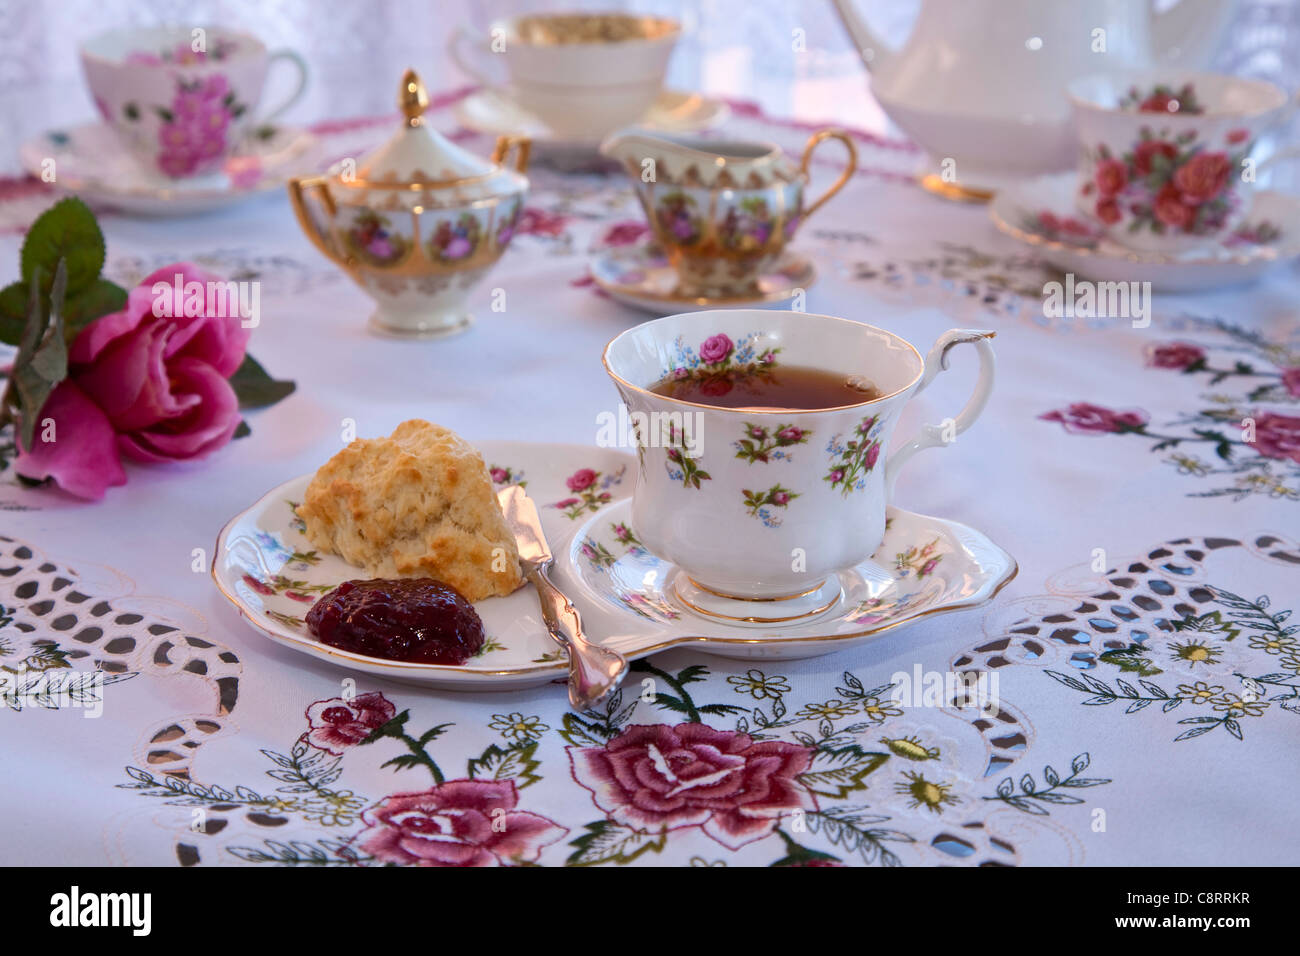 English High Tea with scones and Jam at a table setting Stock